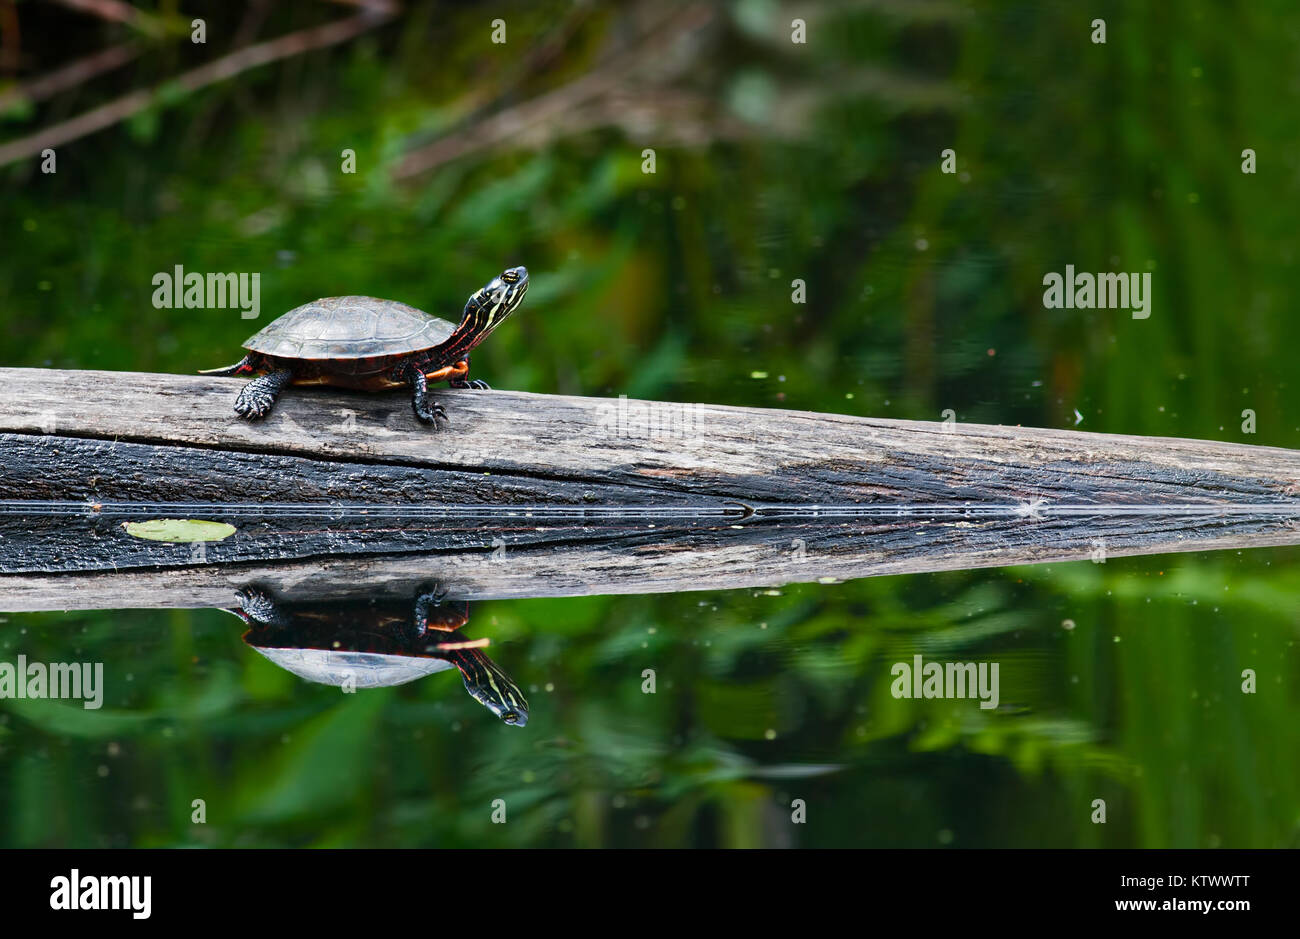 A painted turtle on a log in a pond. A mirrored reflection is seen in the water. - Stock Image